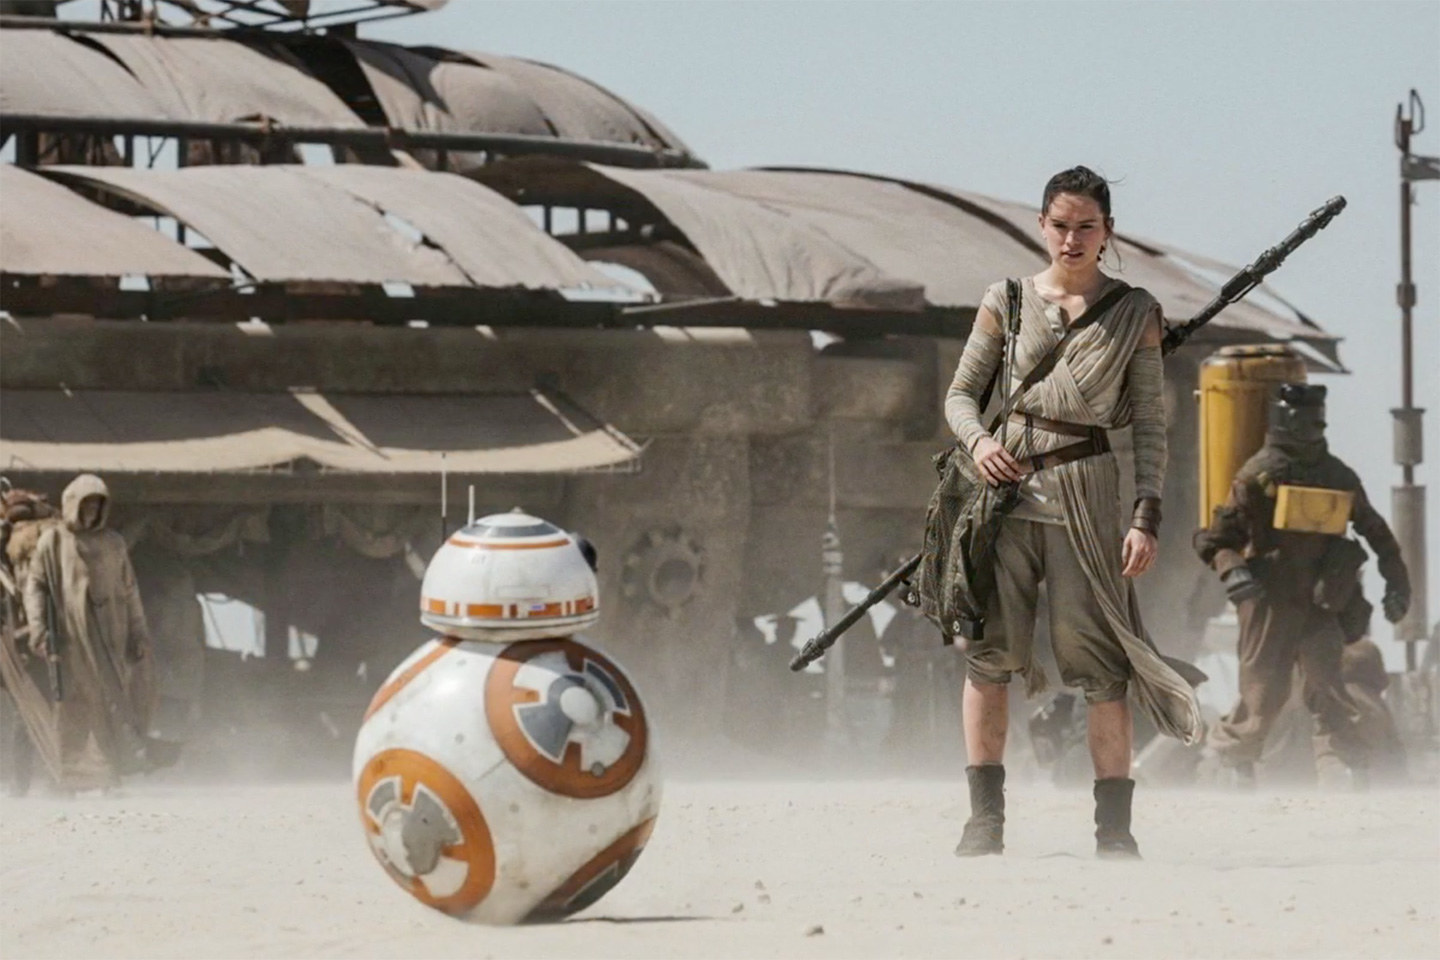 Star Wars - The Force Awakens Review